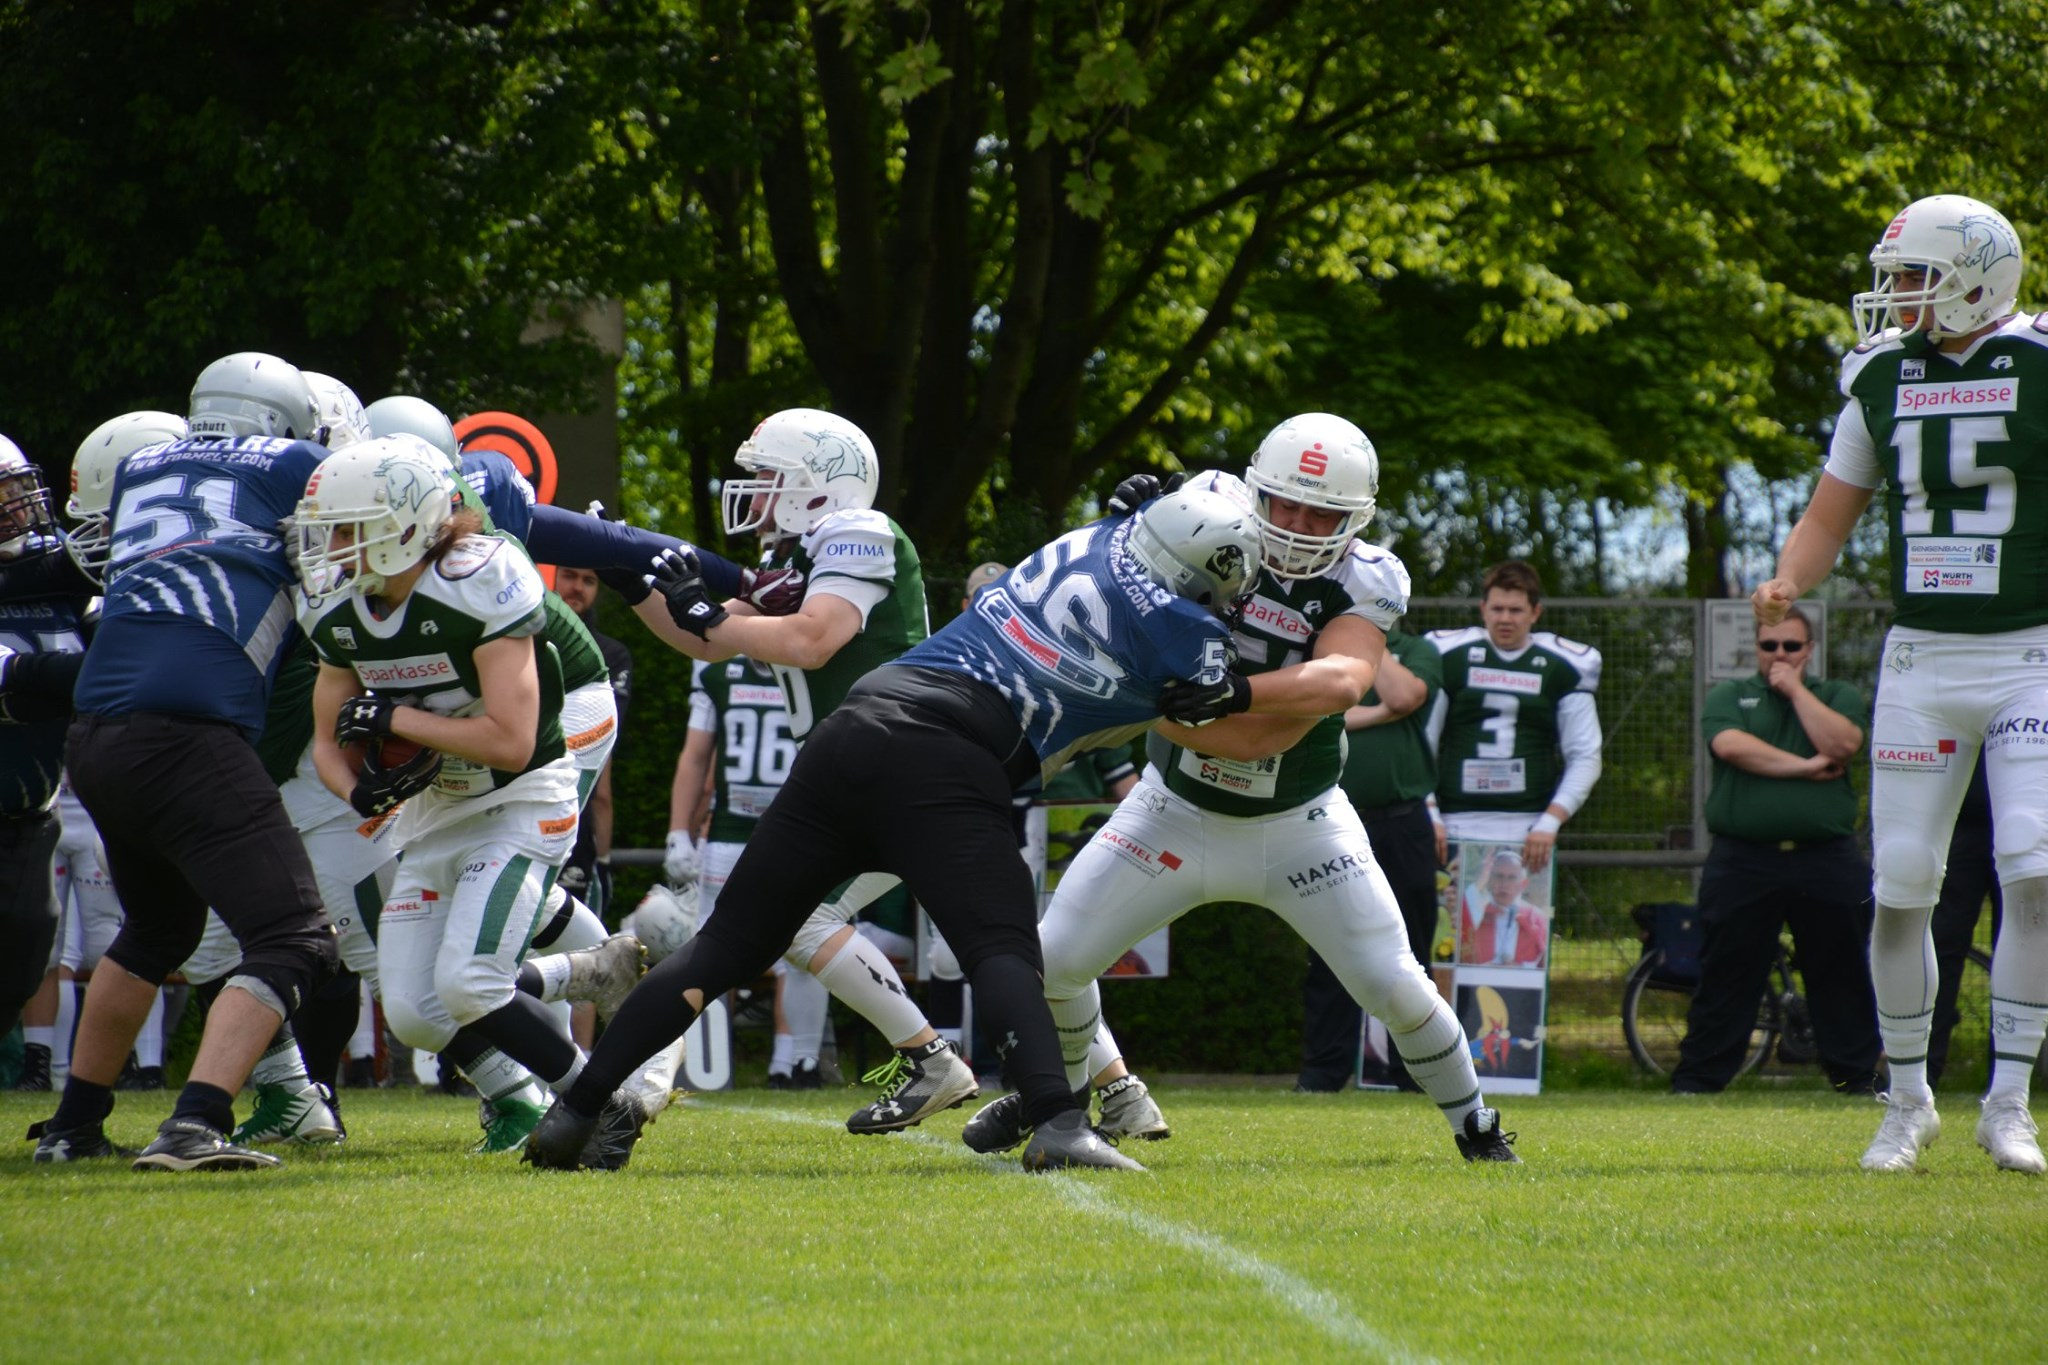 SV Kornwestheim Cougars vs Schwaebisch Hall Unicorns 2 110519 01